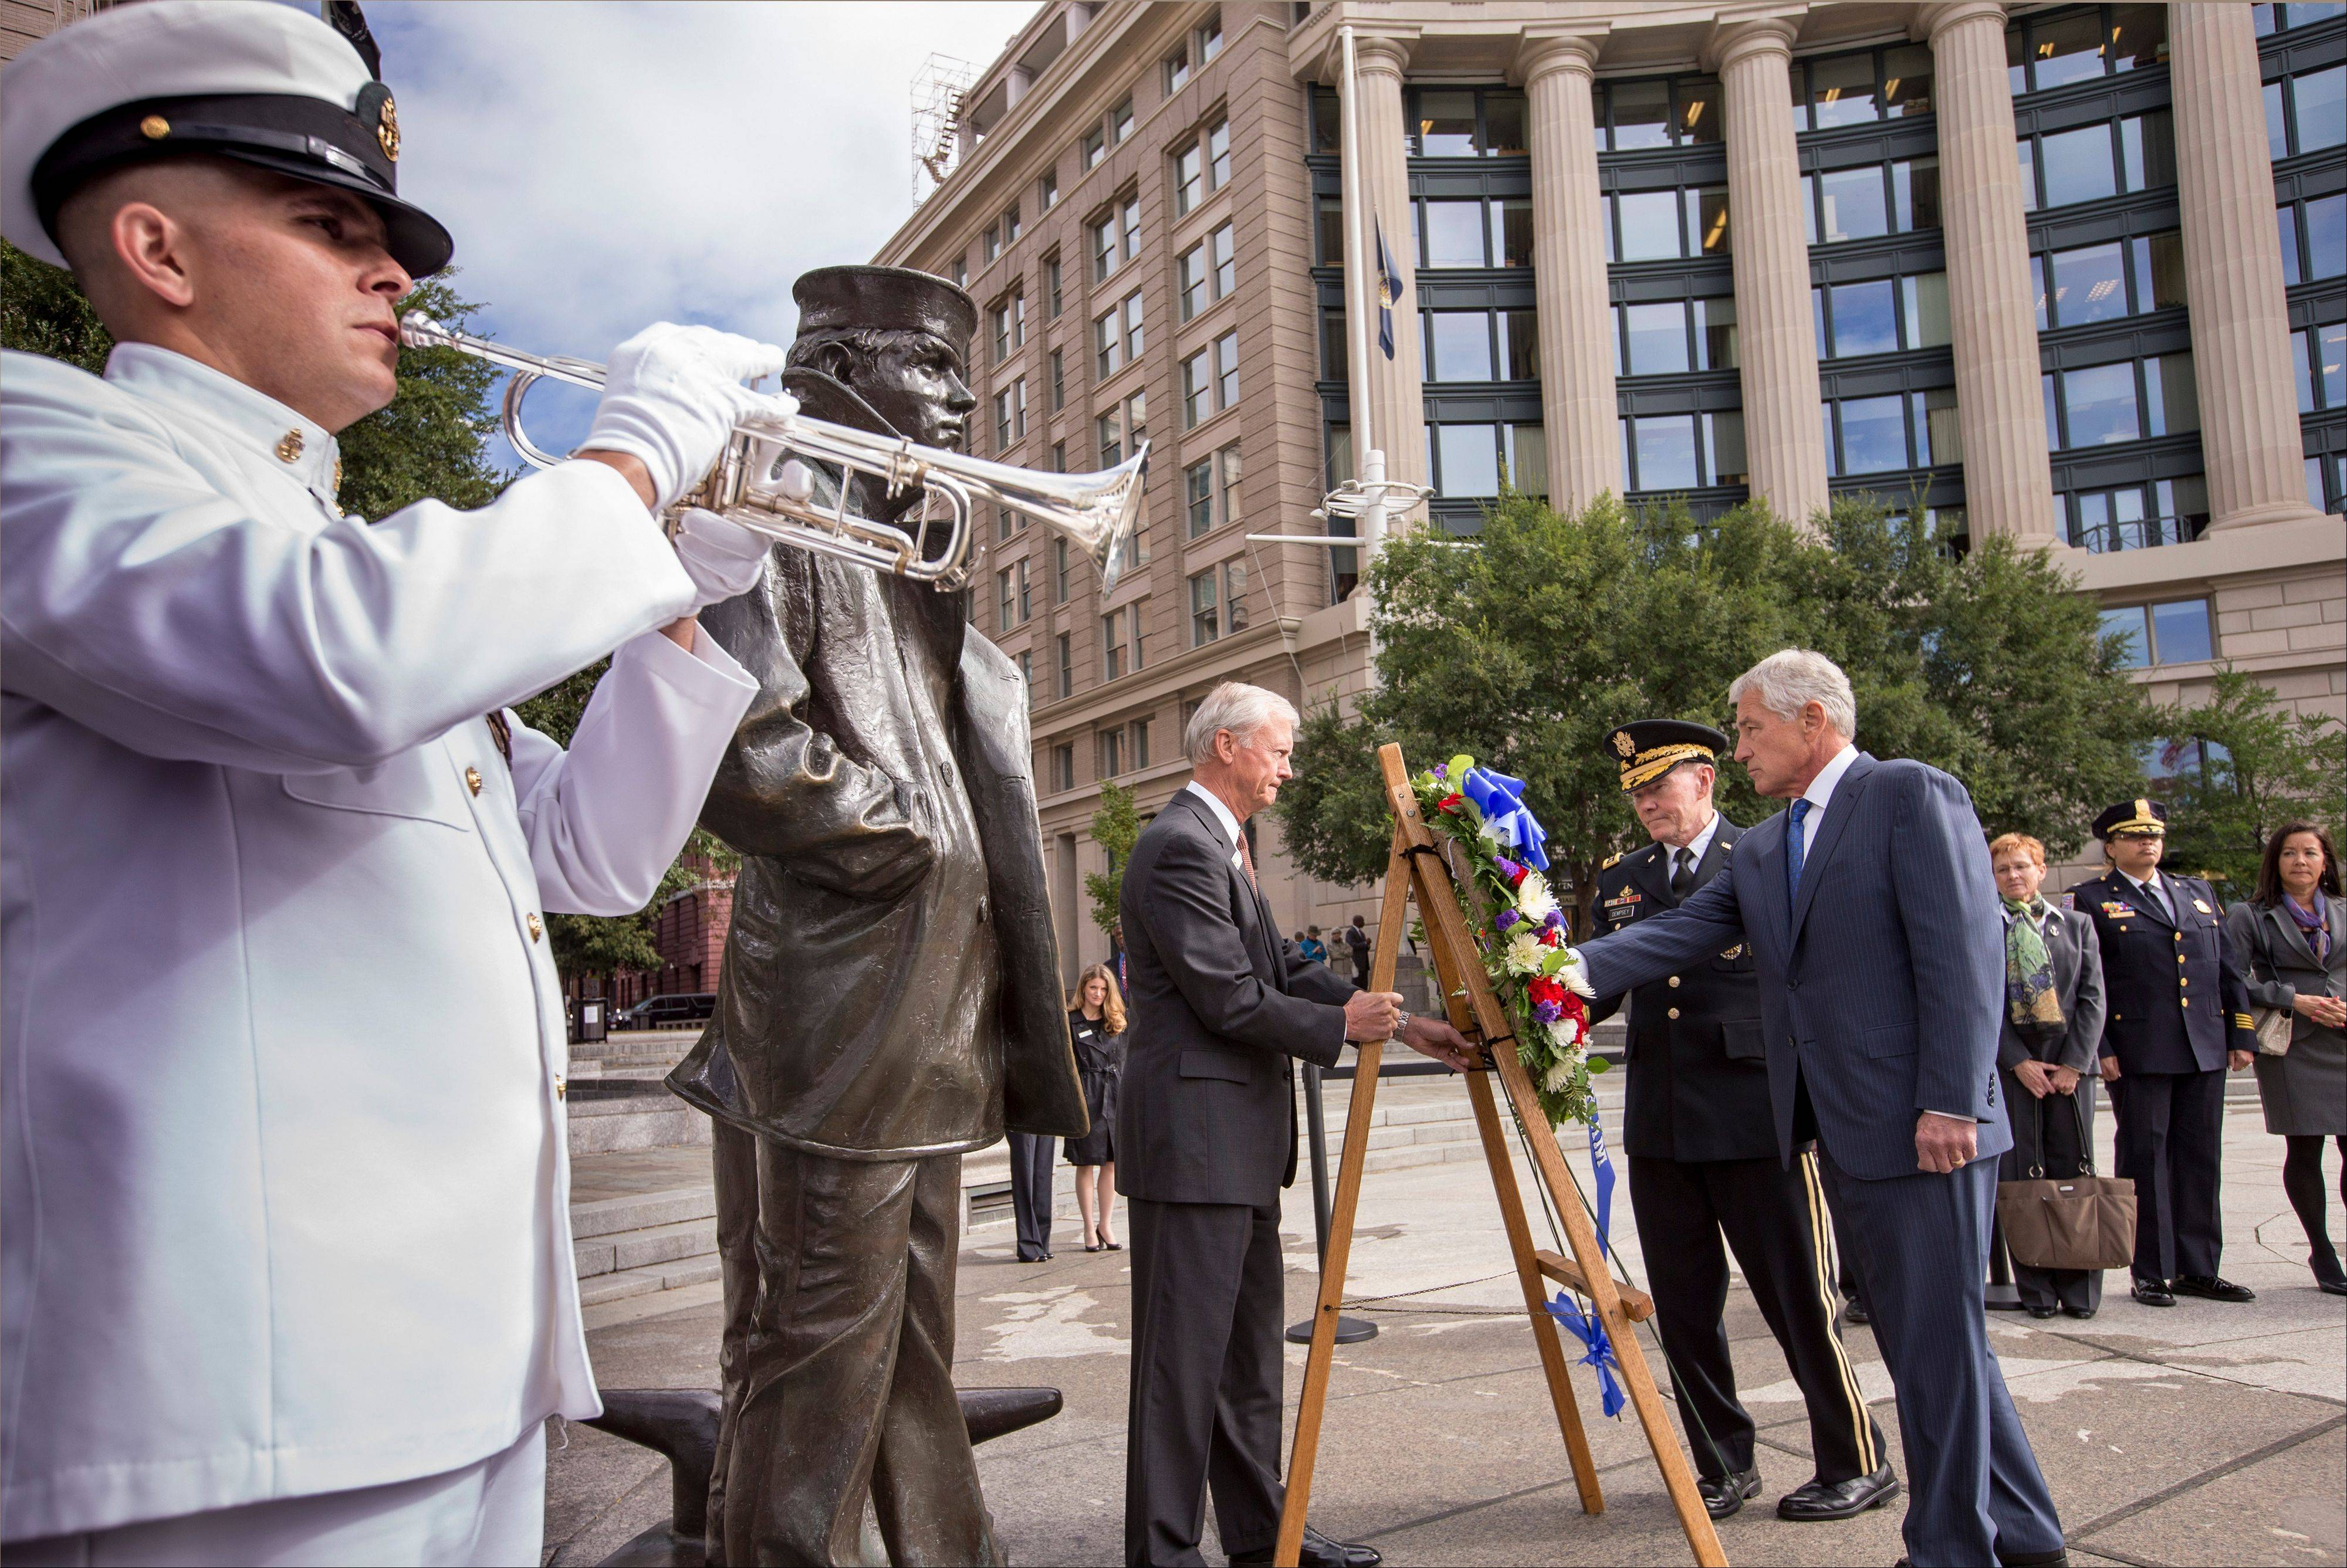 Defense Secretary Chuck Hagel, right, and Joint Chiefs Chairman Gen. Martin Dempsey, second from right, present a wreath at the Navy Memorial in Washington to remember the victims of Monday's deadly shooting at the Washington Navy Yard, Tuesday, Sept. 17, 2013.